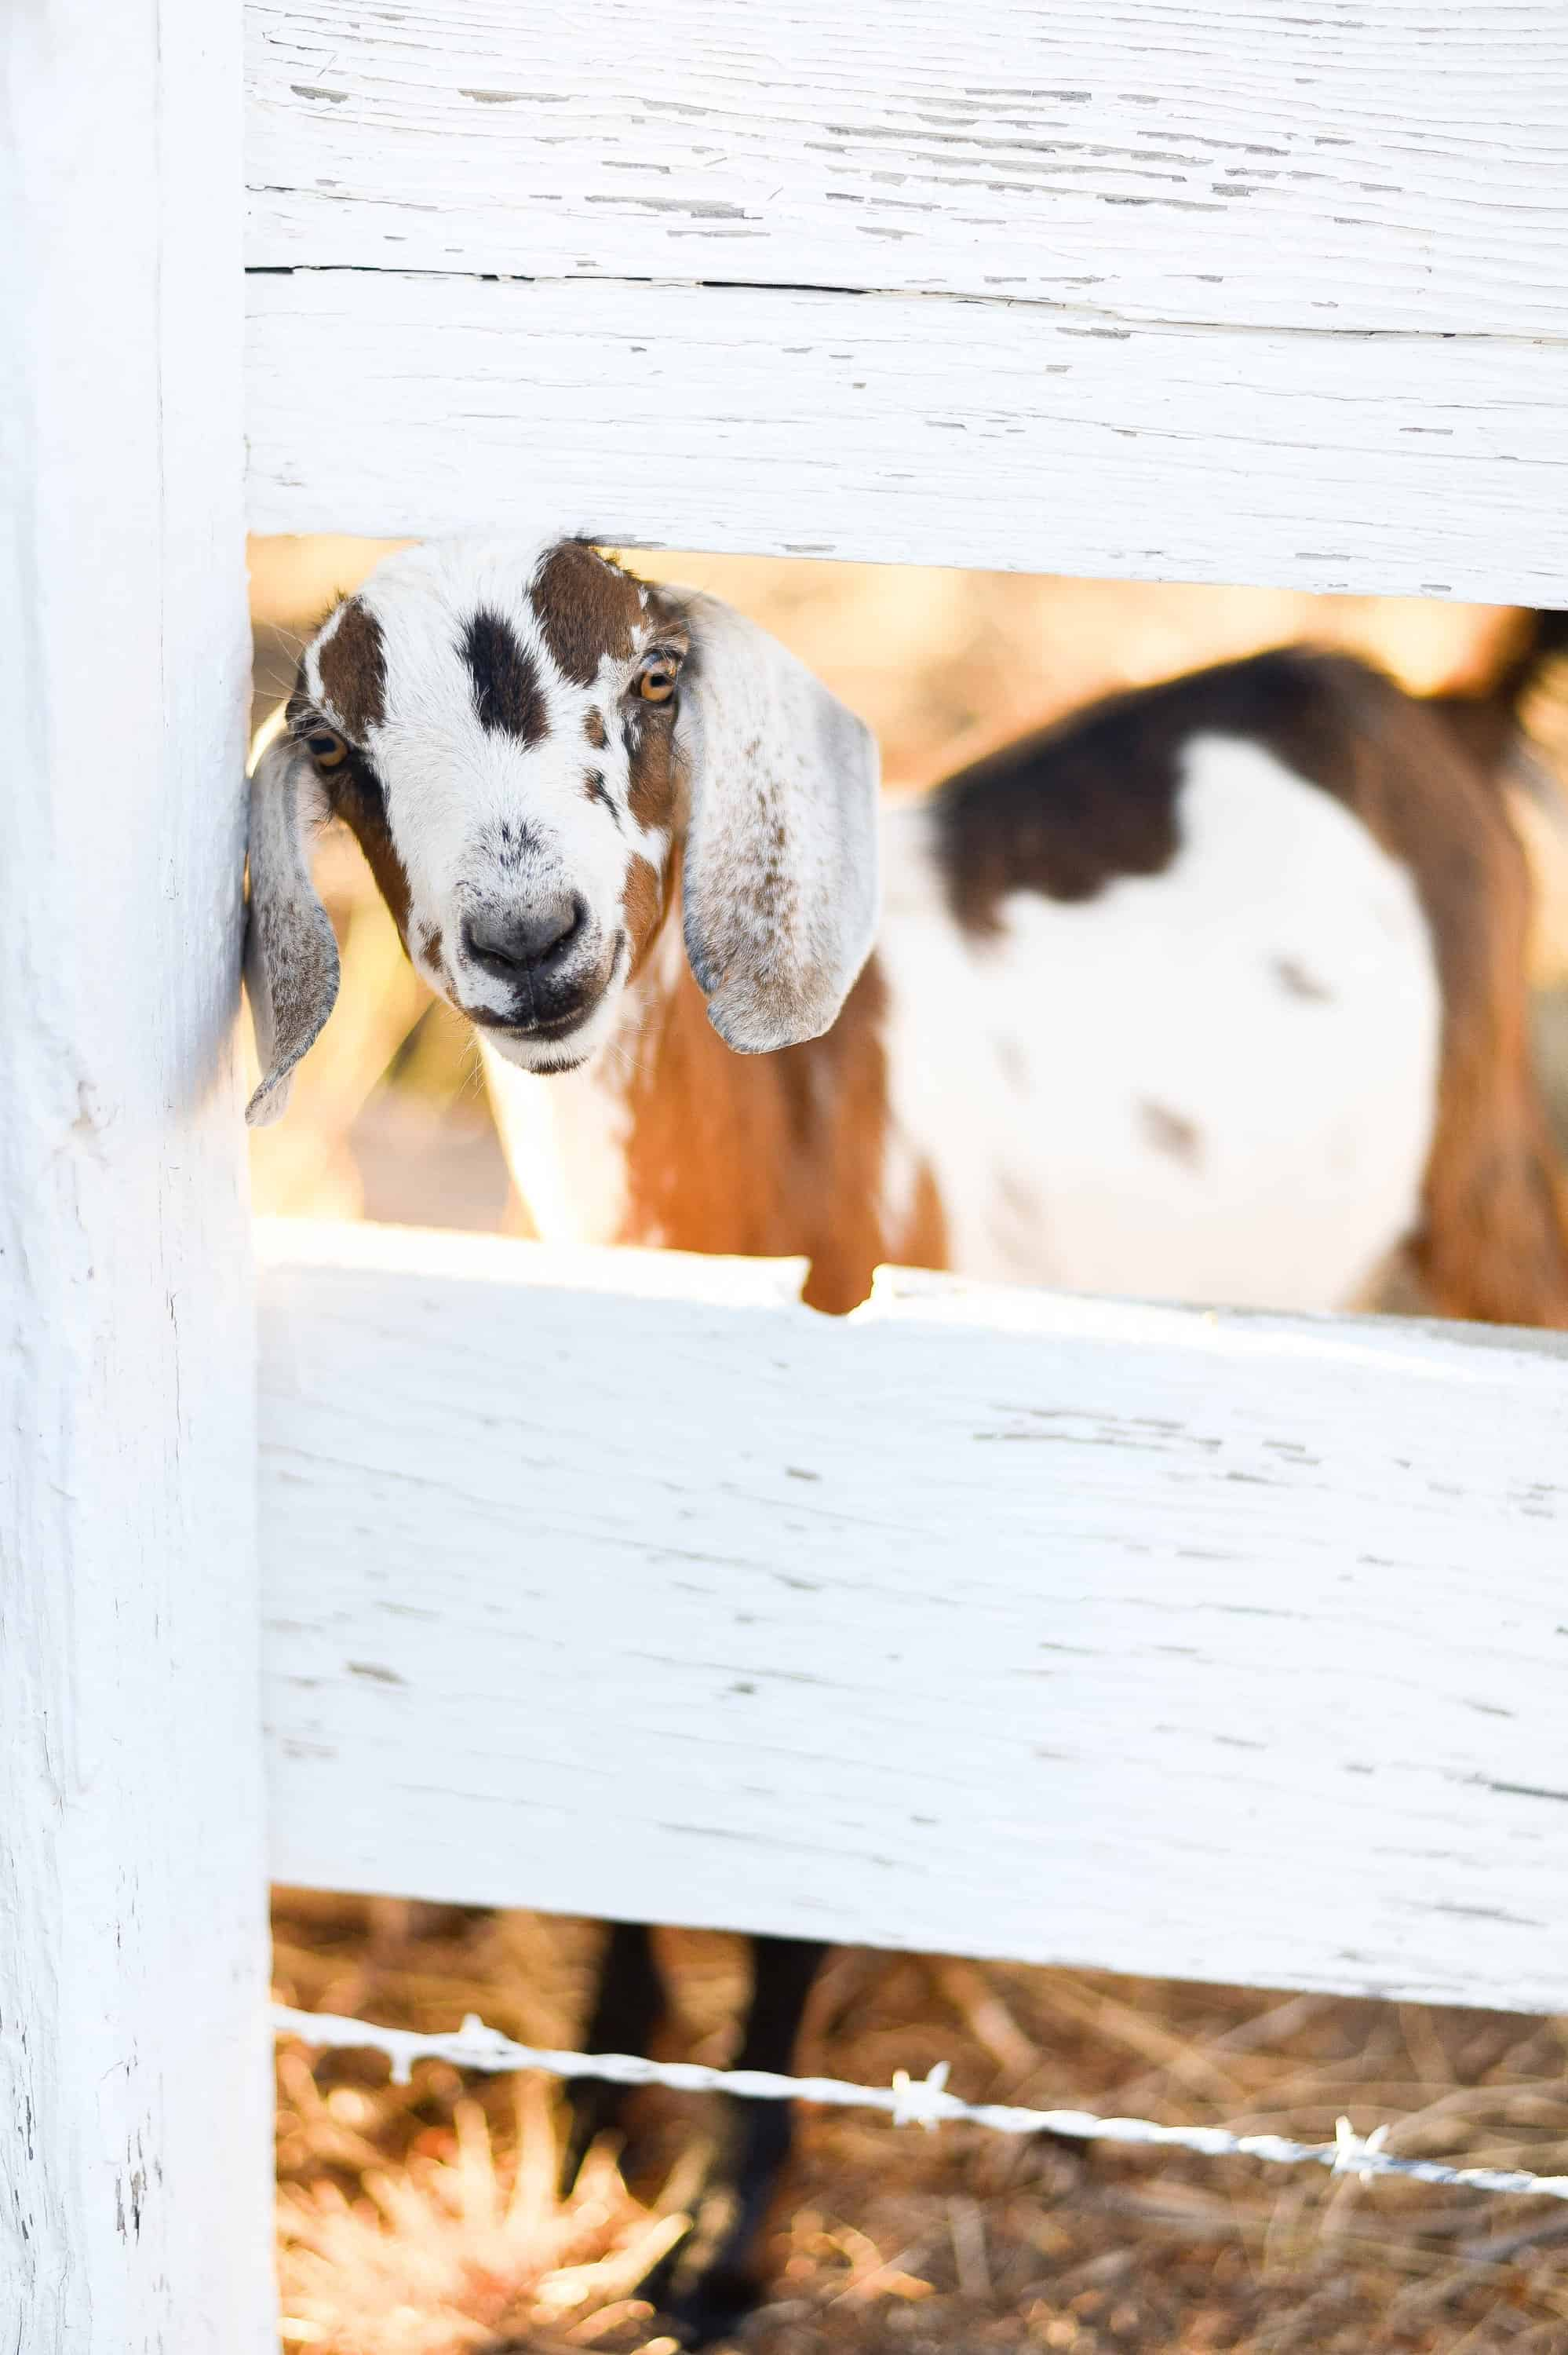 15 Things I Wish I Knew Before Getting Goats | However, it is a common misconception that goats are easy keepers - in fact, they are our most high maintenance animals. They require a close eye and lots of attention, so I thought it would be convenient to compile a list of things I wish I knew before we got goats -if you're considering getting goats,please, learn from my mistakes! #goatcare #goats #goatlife #ranchlife #boxwoodavenue